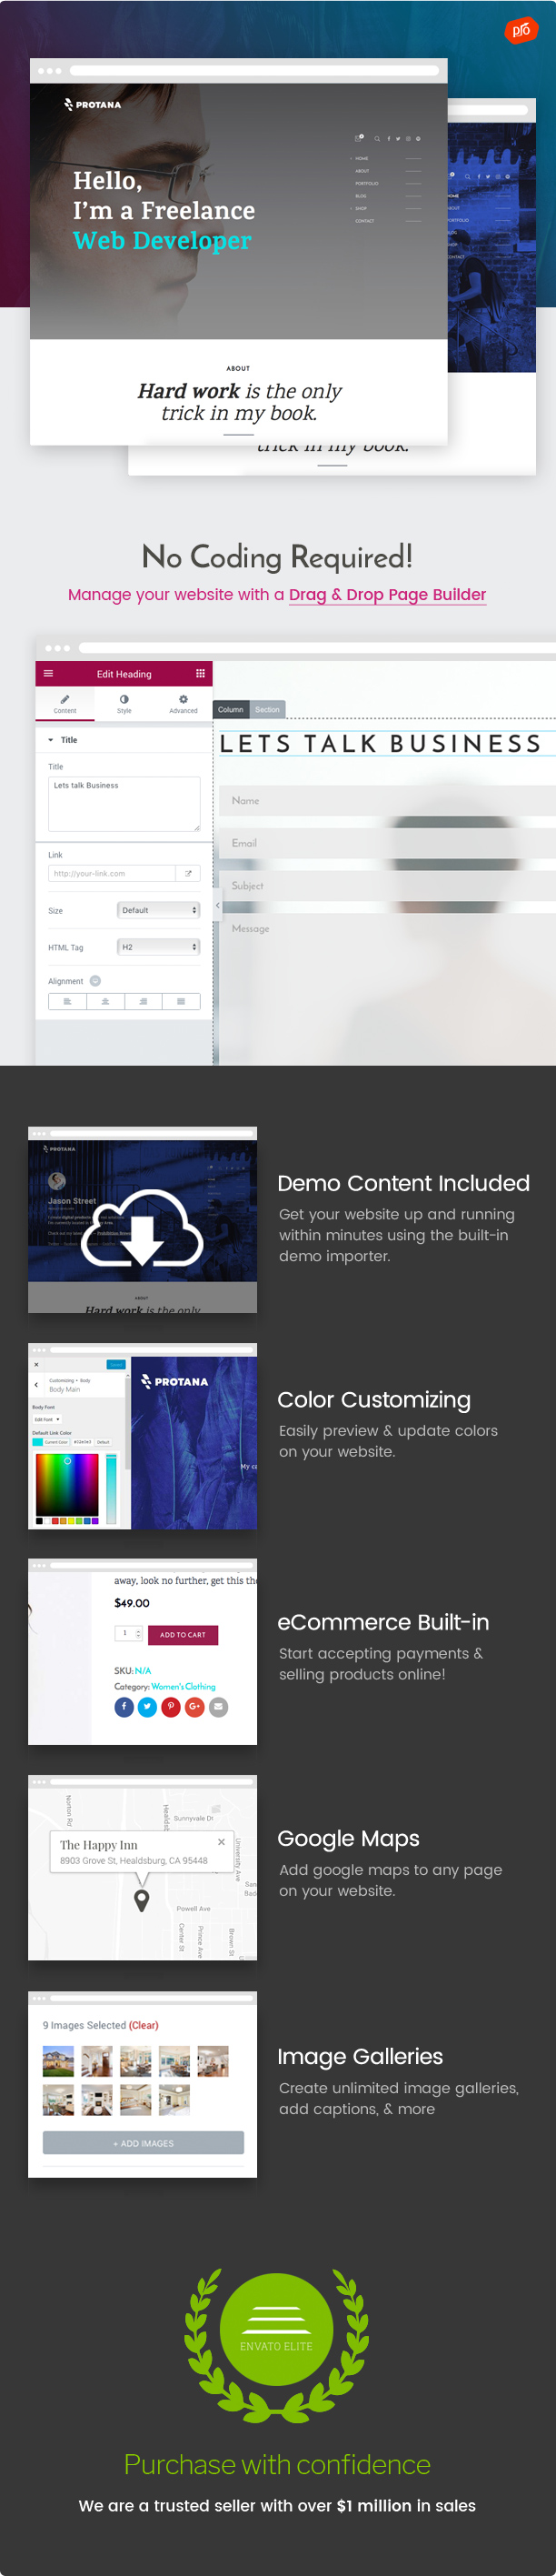 WordPress theme Protana - A Portfolio Theme for Online Professionals (Portfolio)